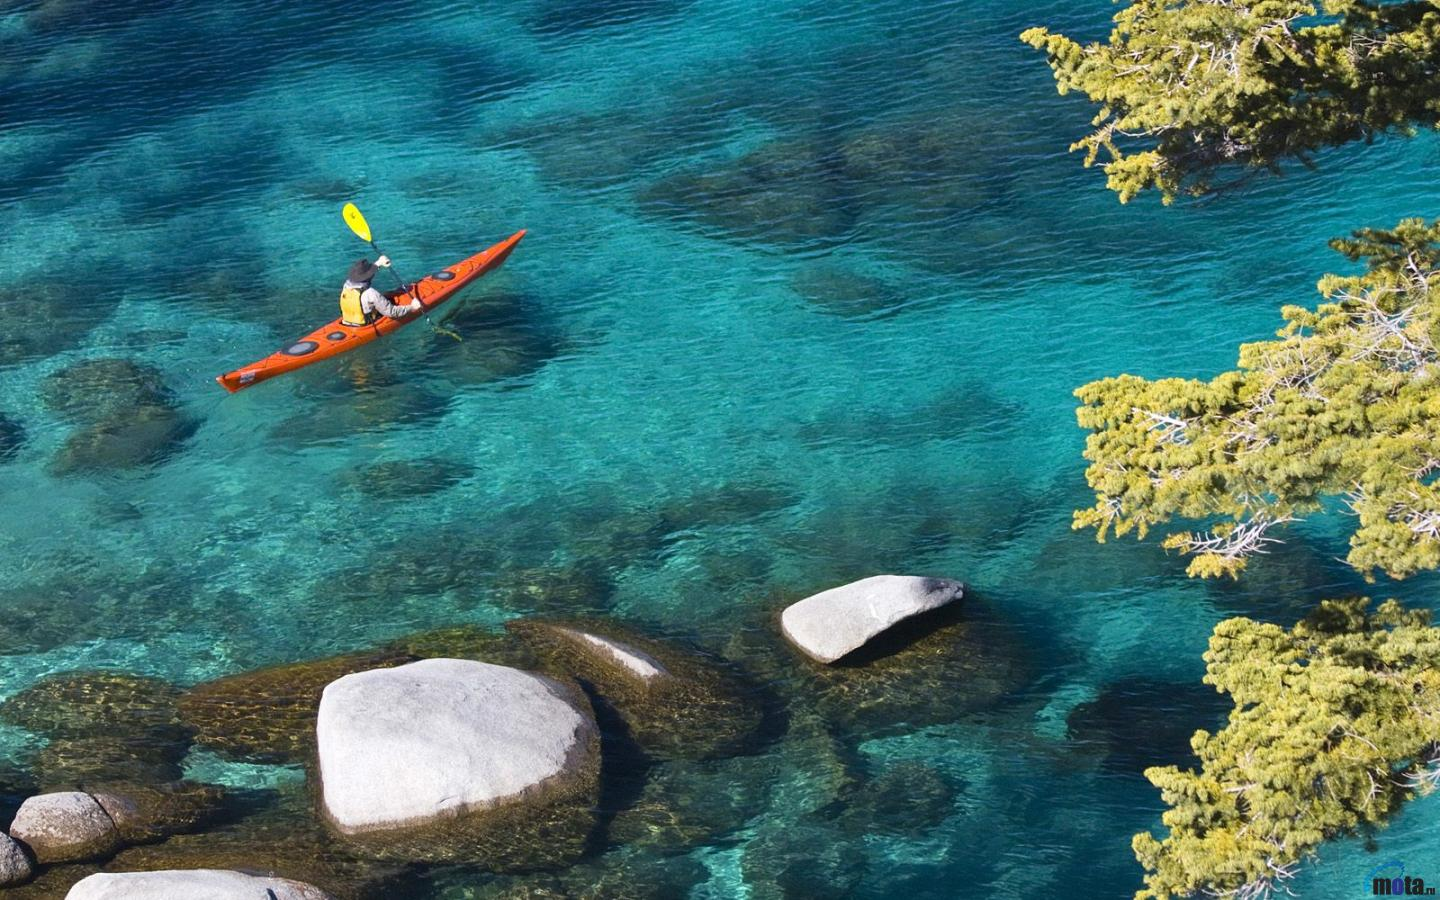 Download Wallpaper Kayaking at Lake Tahoe Nevada 1440 x 900 1440x900